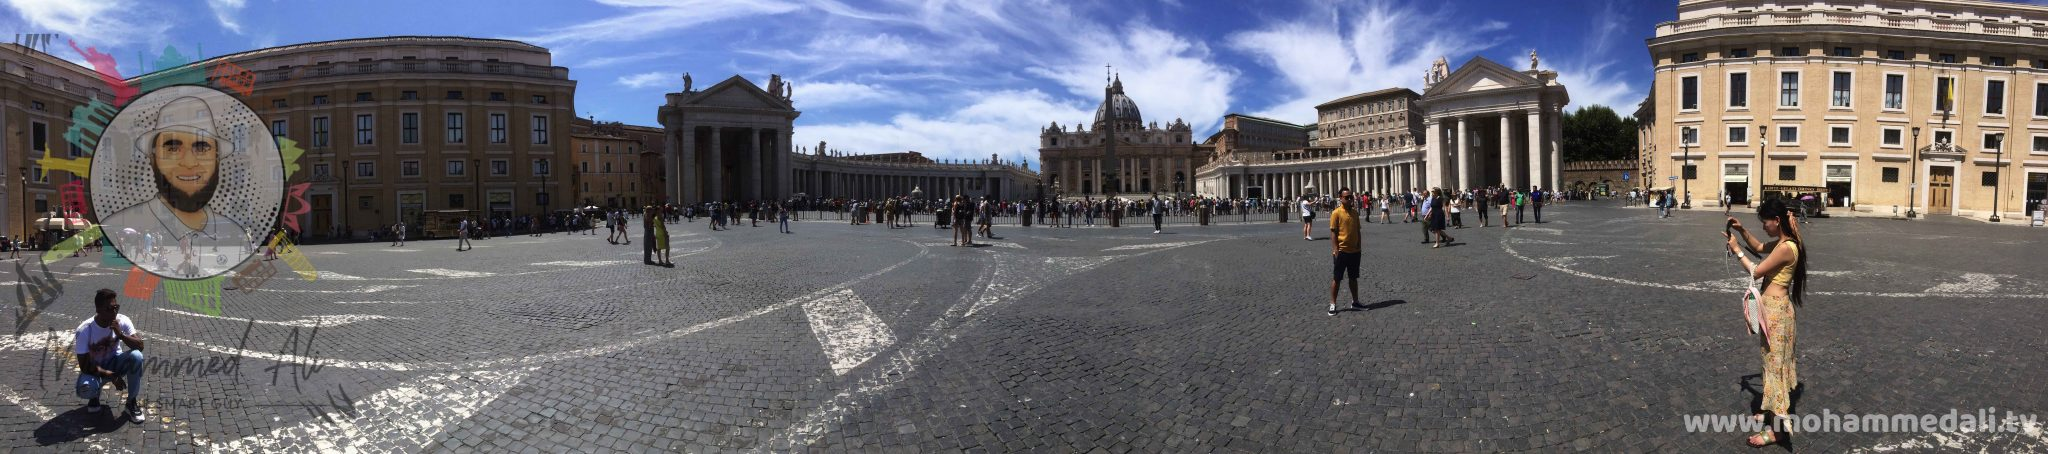 Awesome panoramic view on the St. Peter's Basilica in Vatican City